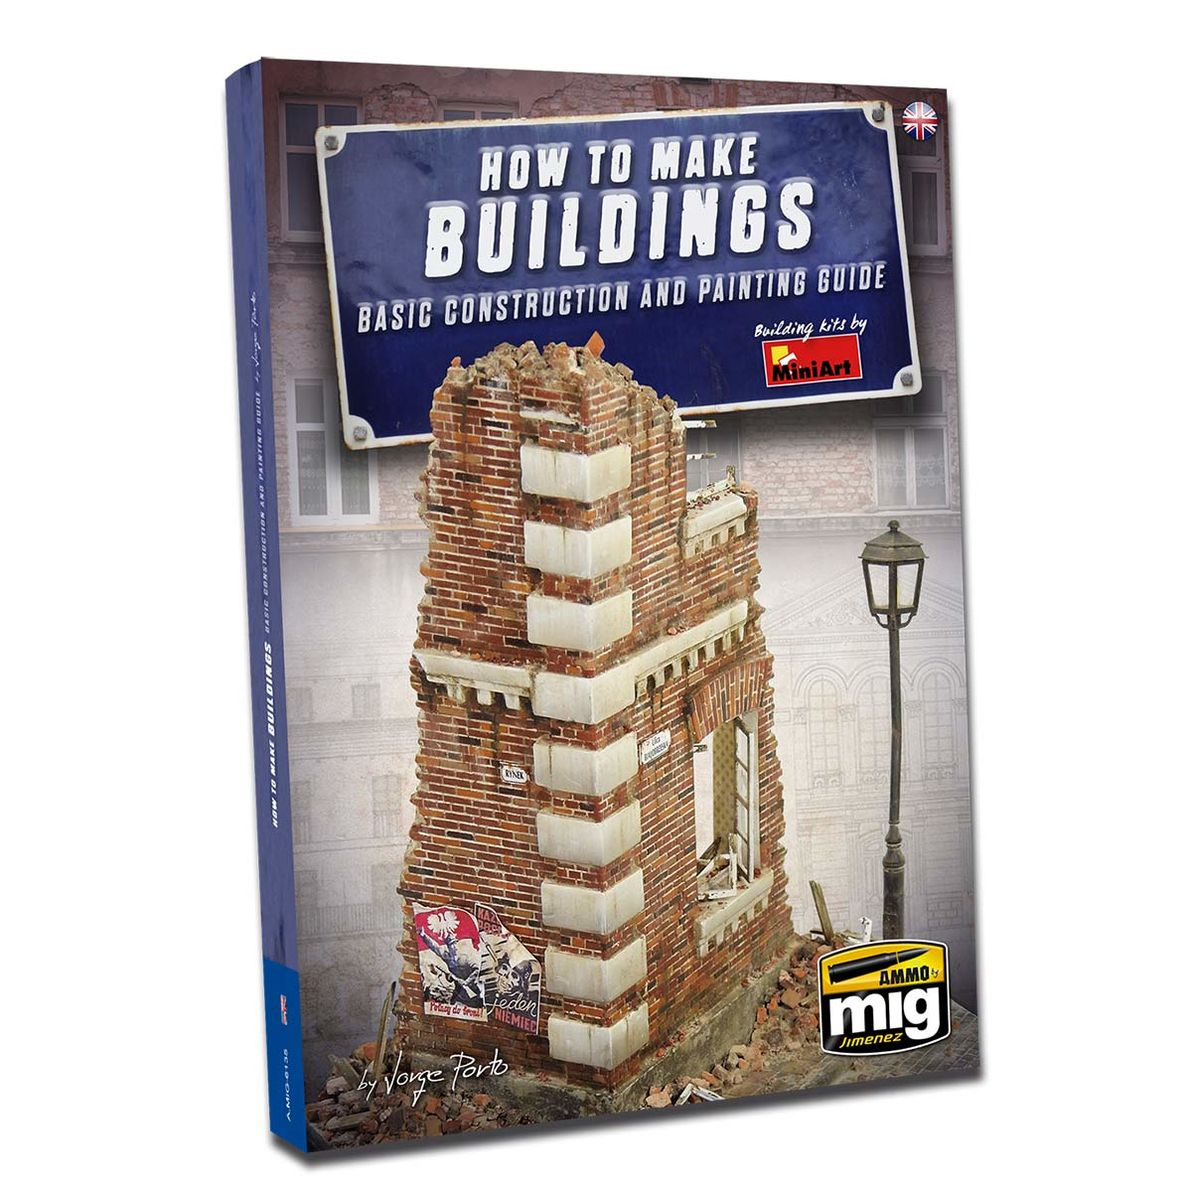 HOW TO MAKE BUILDINGS - BASIC CONSTRUCTION AND PAINTING GUIDE - Image 1